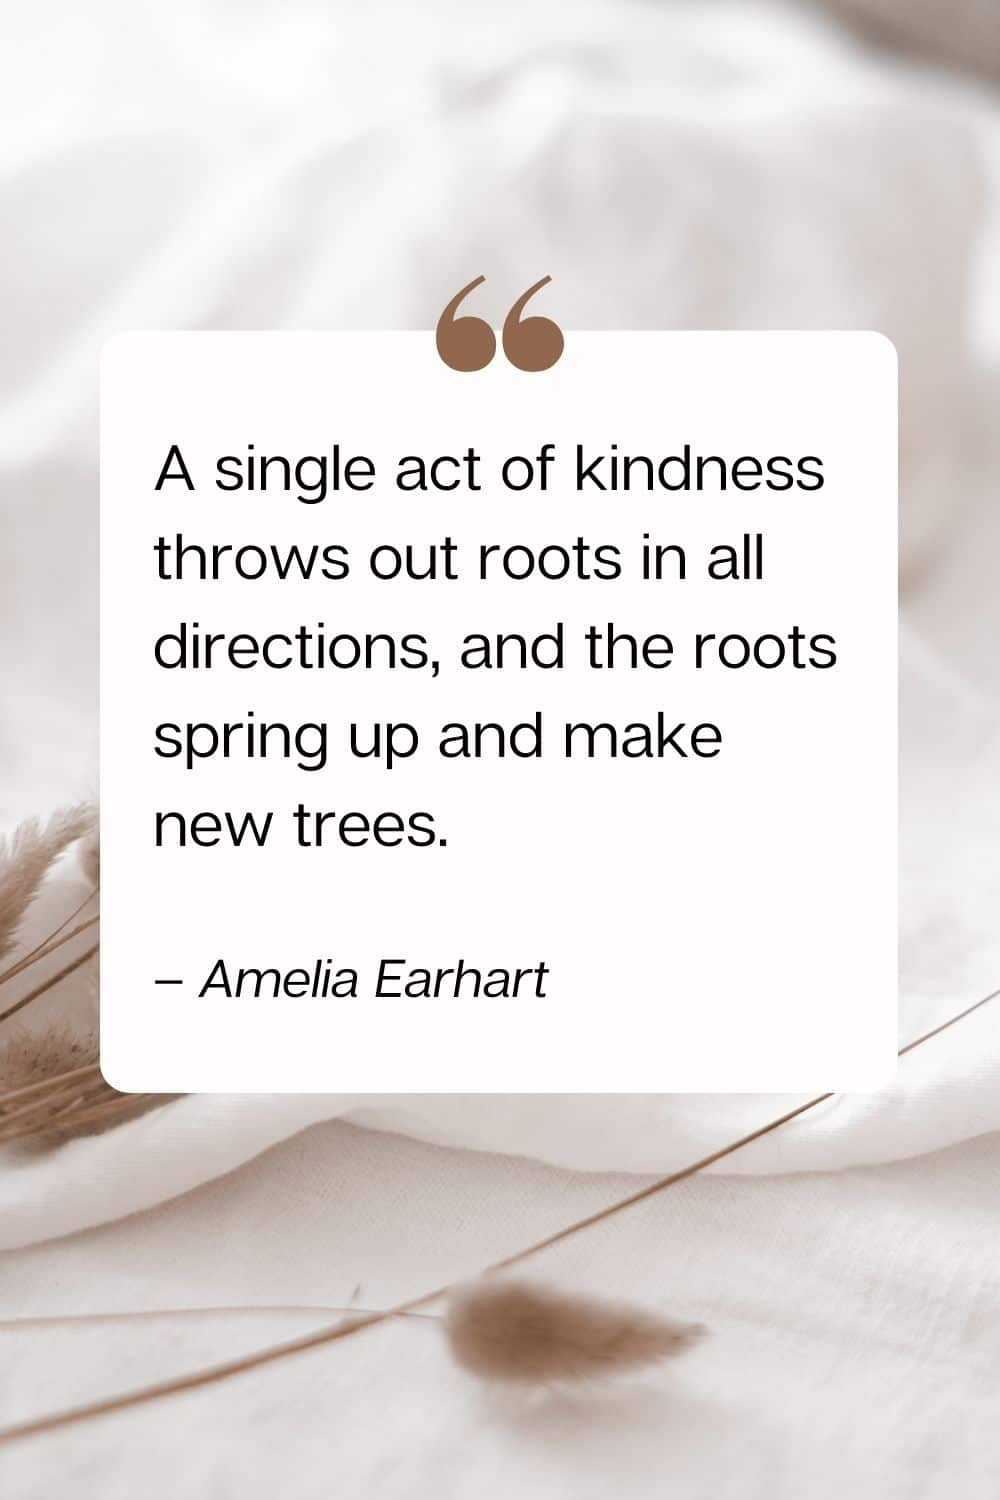 kindness quote - A single act of kindness throws out roots in all directions, and the roots spring up and make new trees. – Amelia Earhart